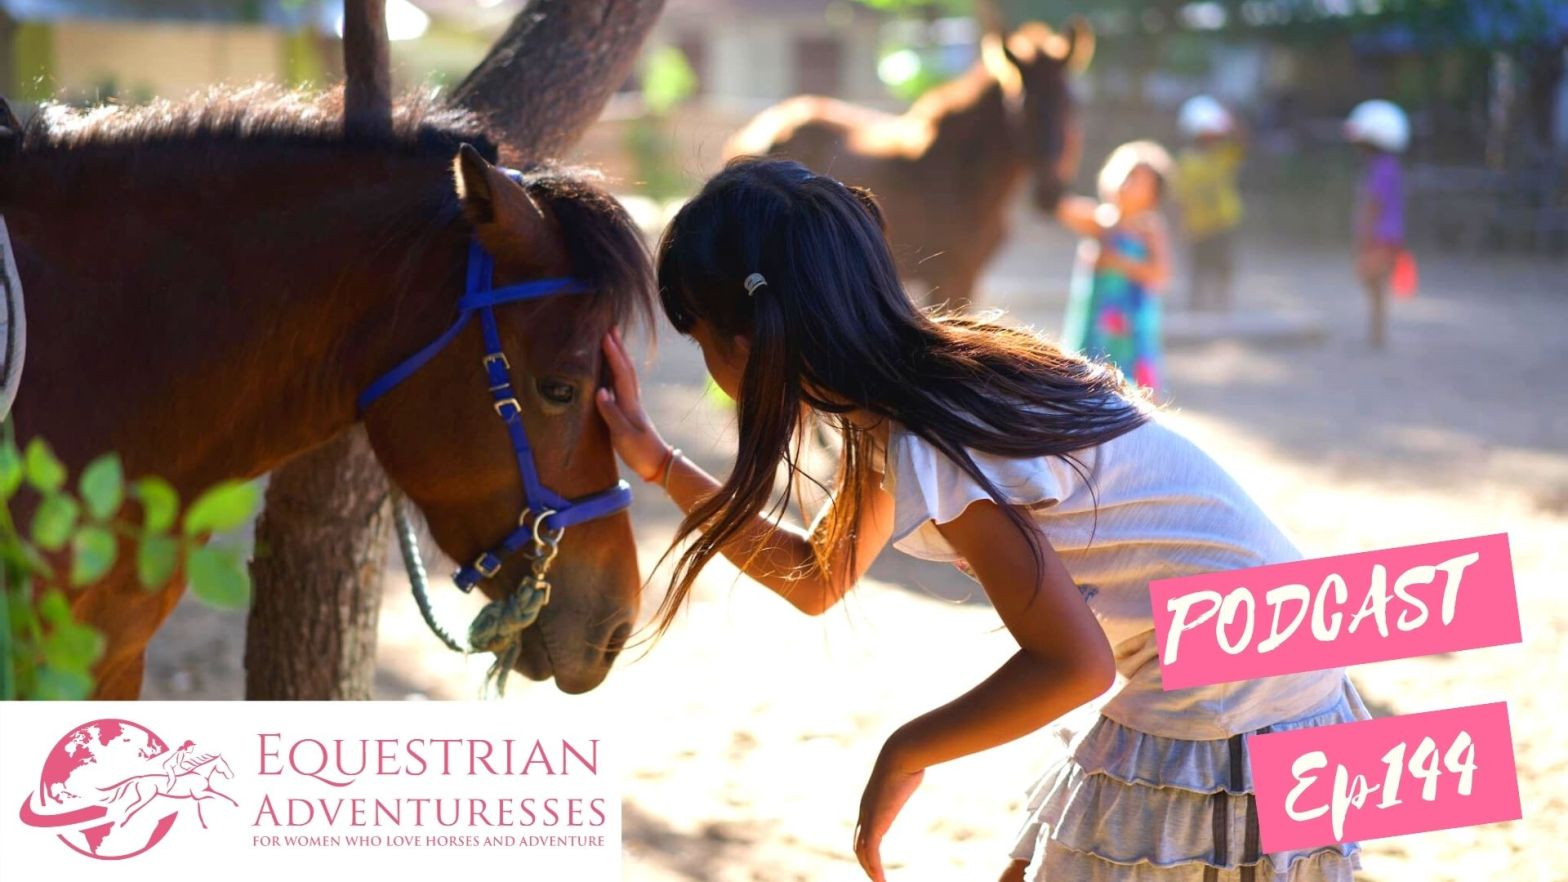 Equestrian Adventuresses Travel and Horse Podcast Ep 144 - Saving the horses of the Gili Islands